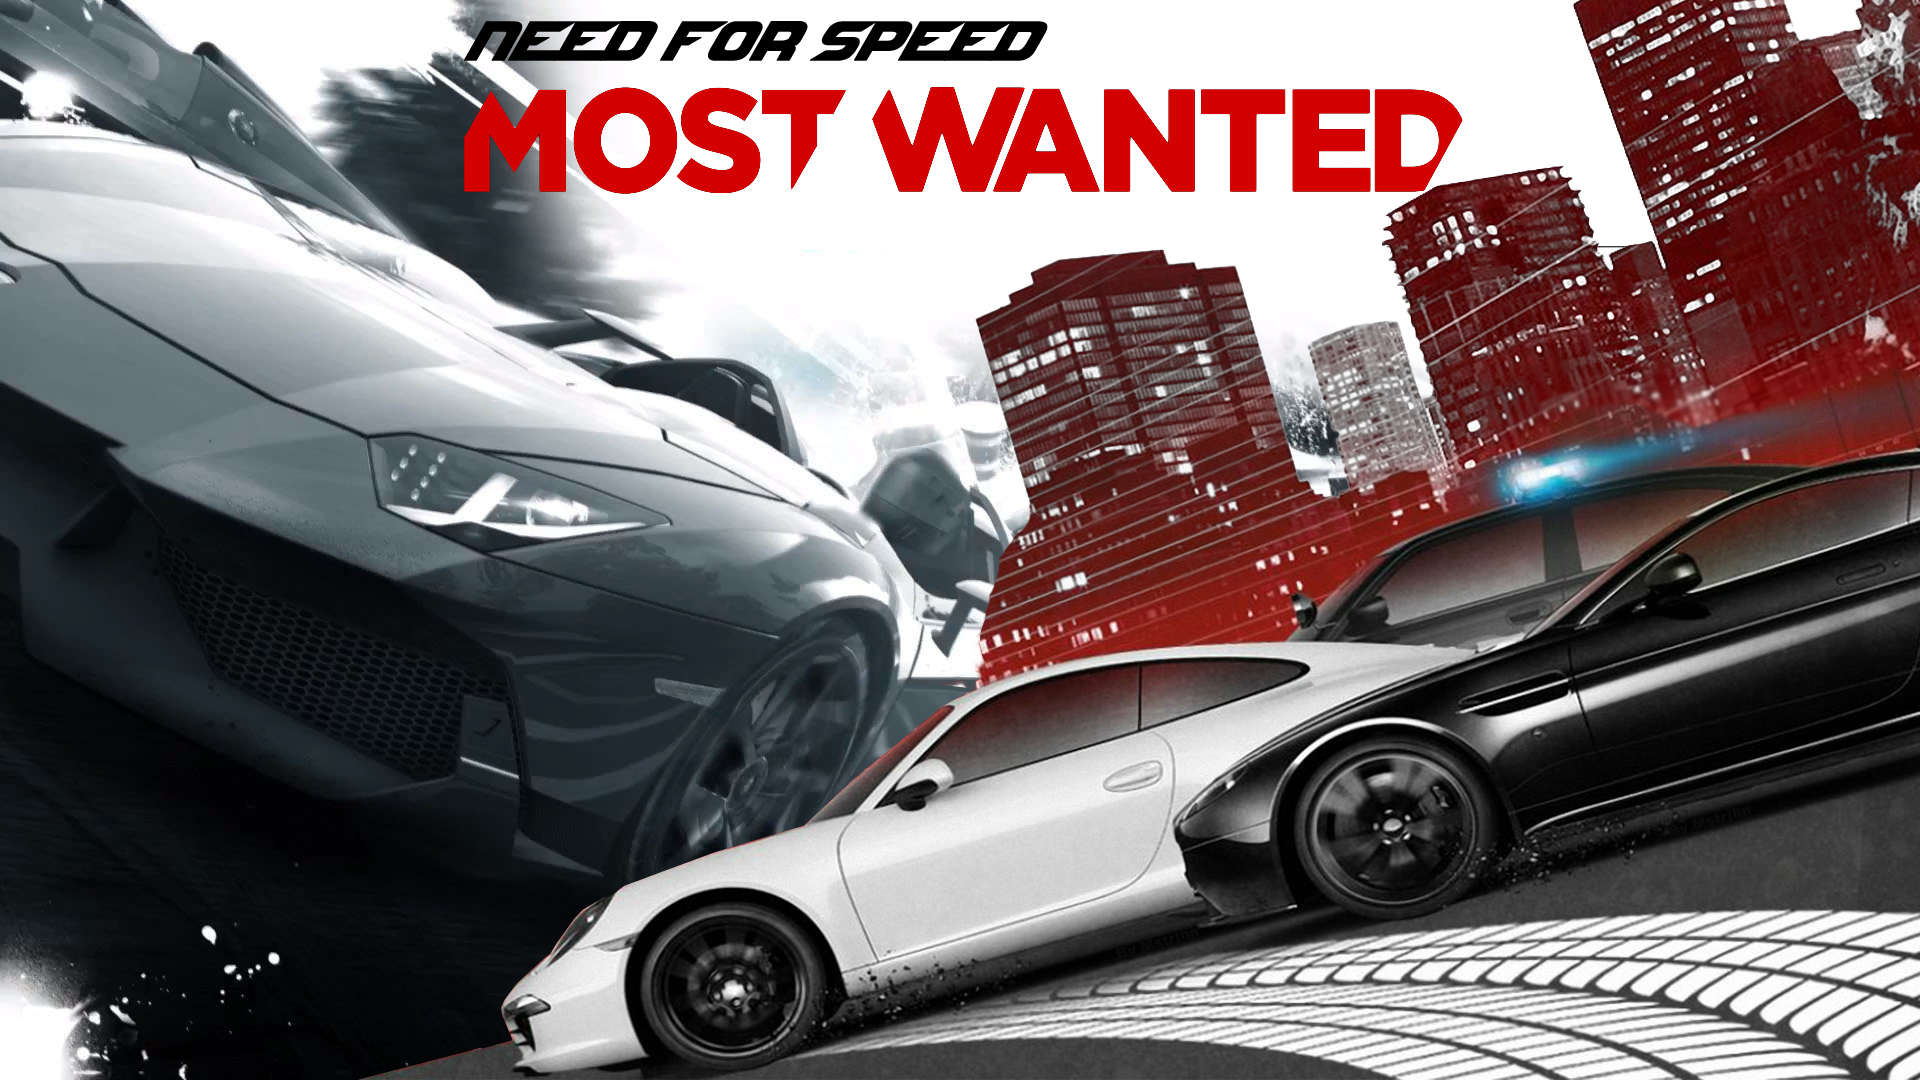 download need for speed most wanted full version setup free for pc